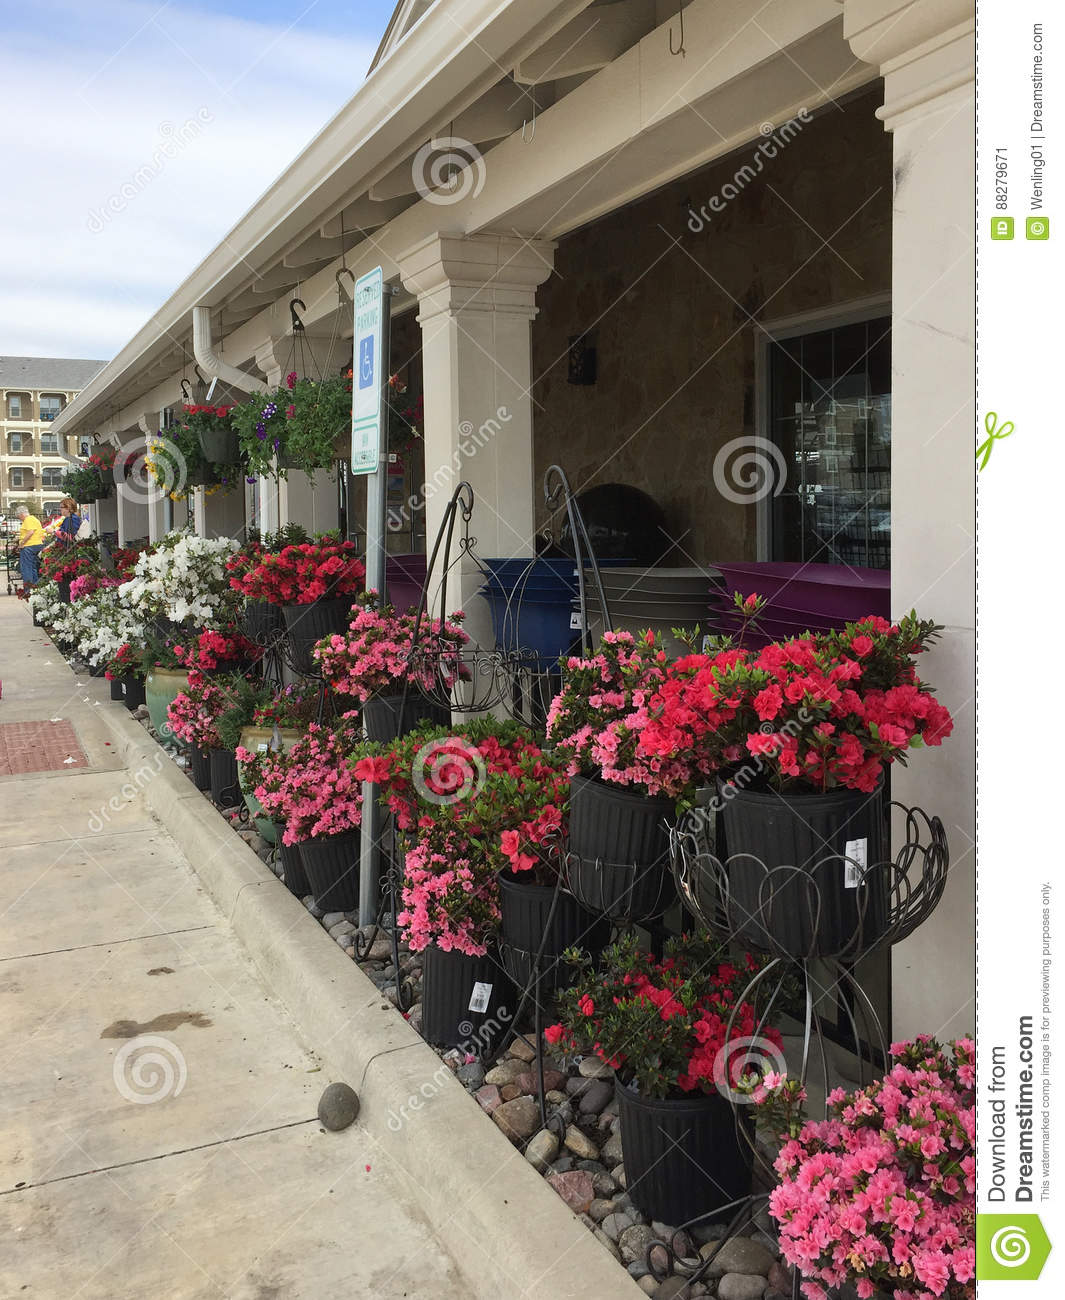 Lots Of Spring Flowers For Sale Editorial Photo Image Of Shelves